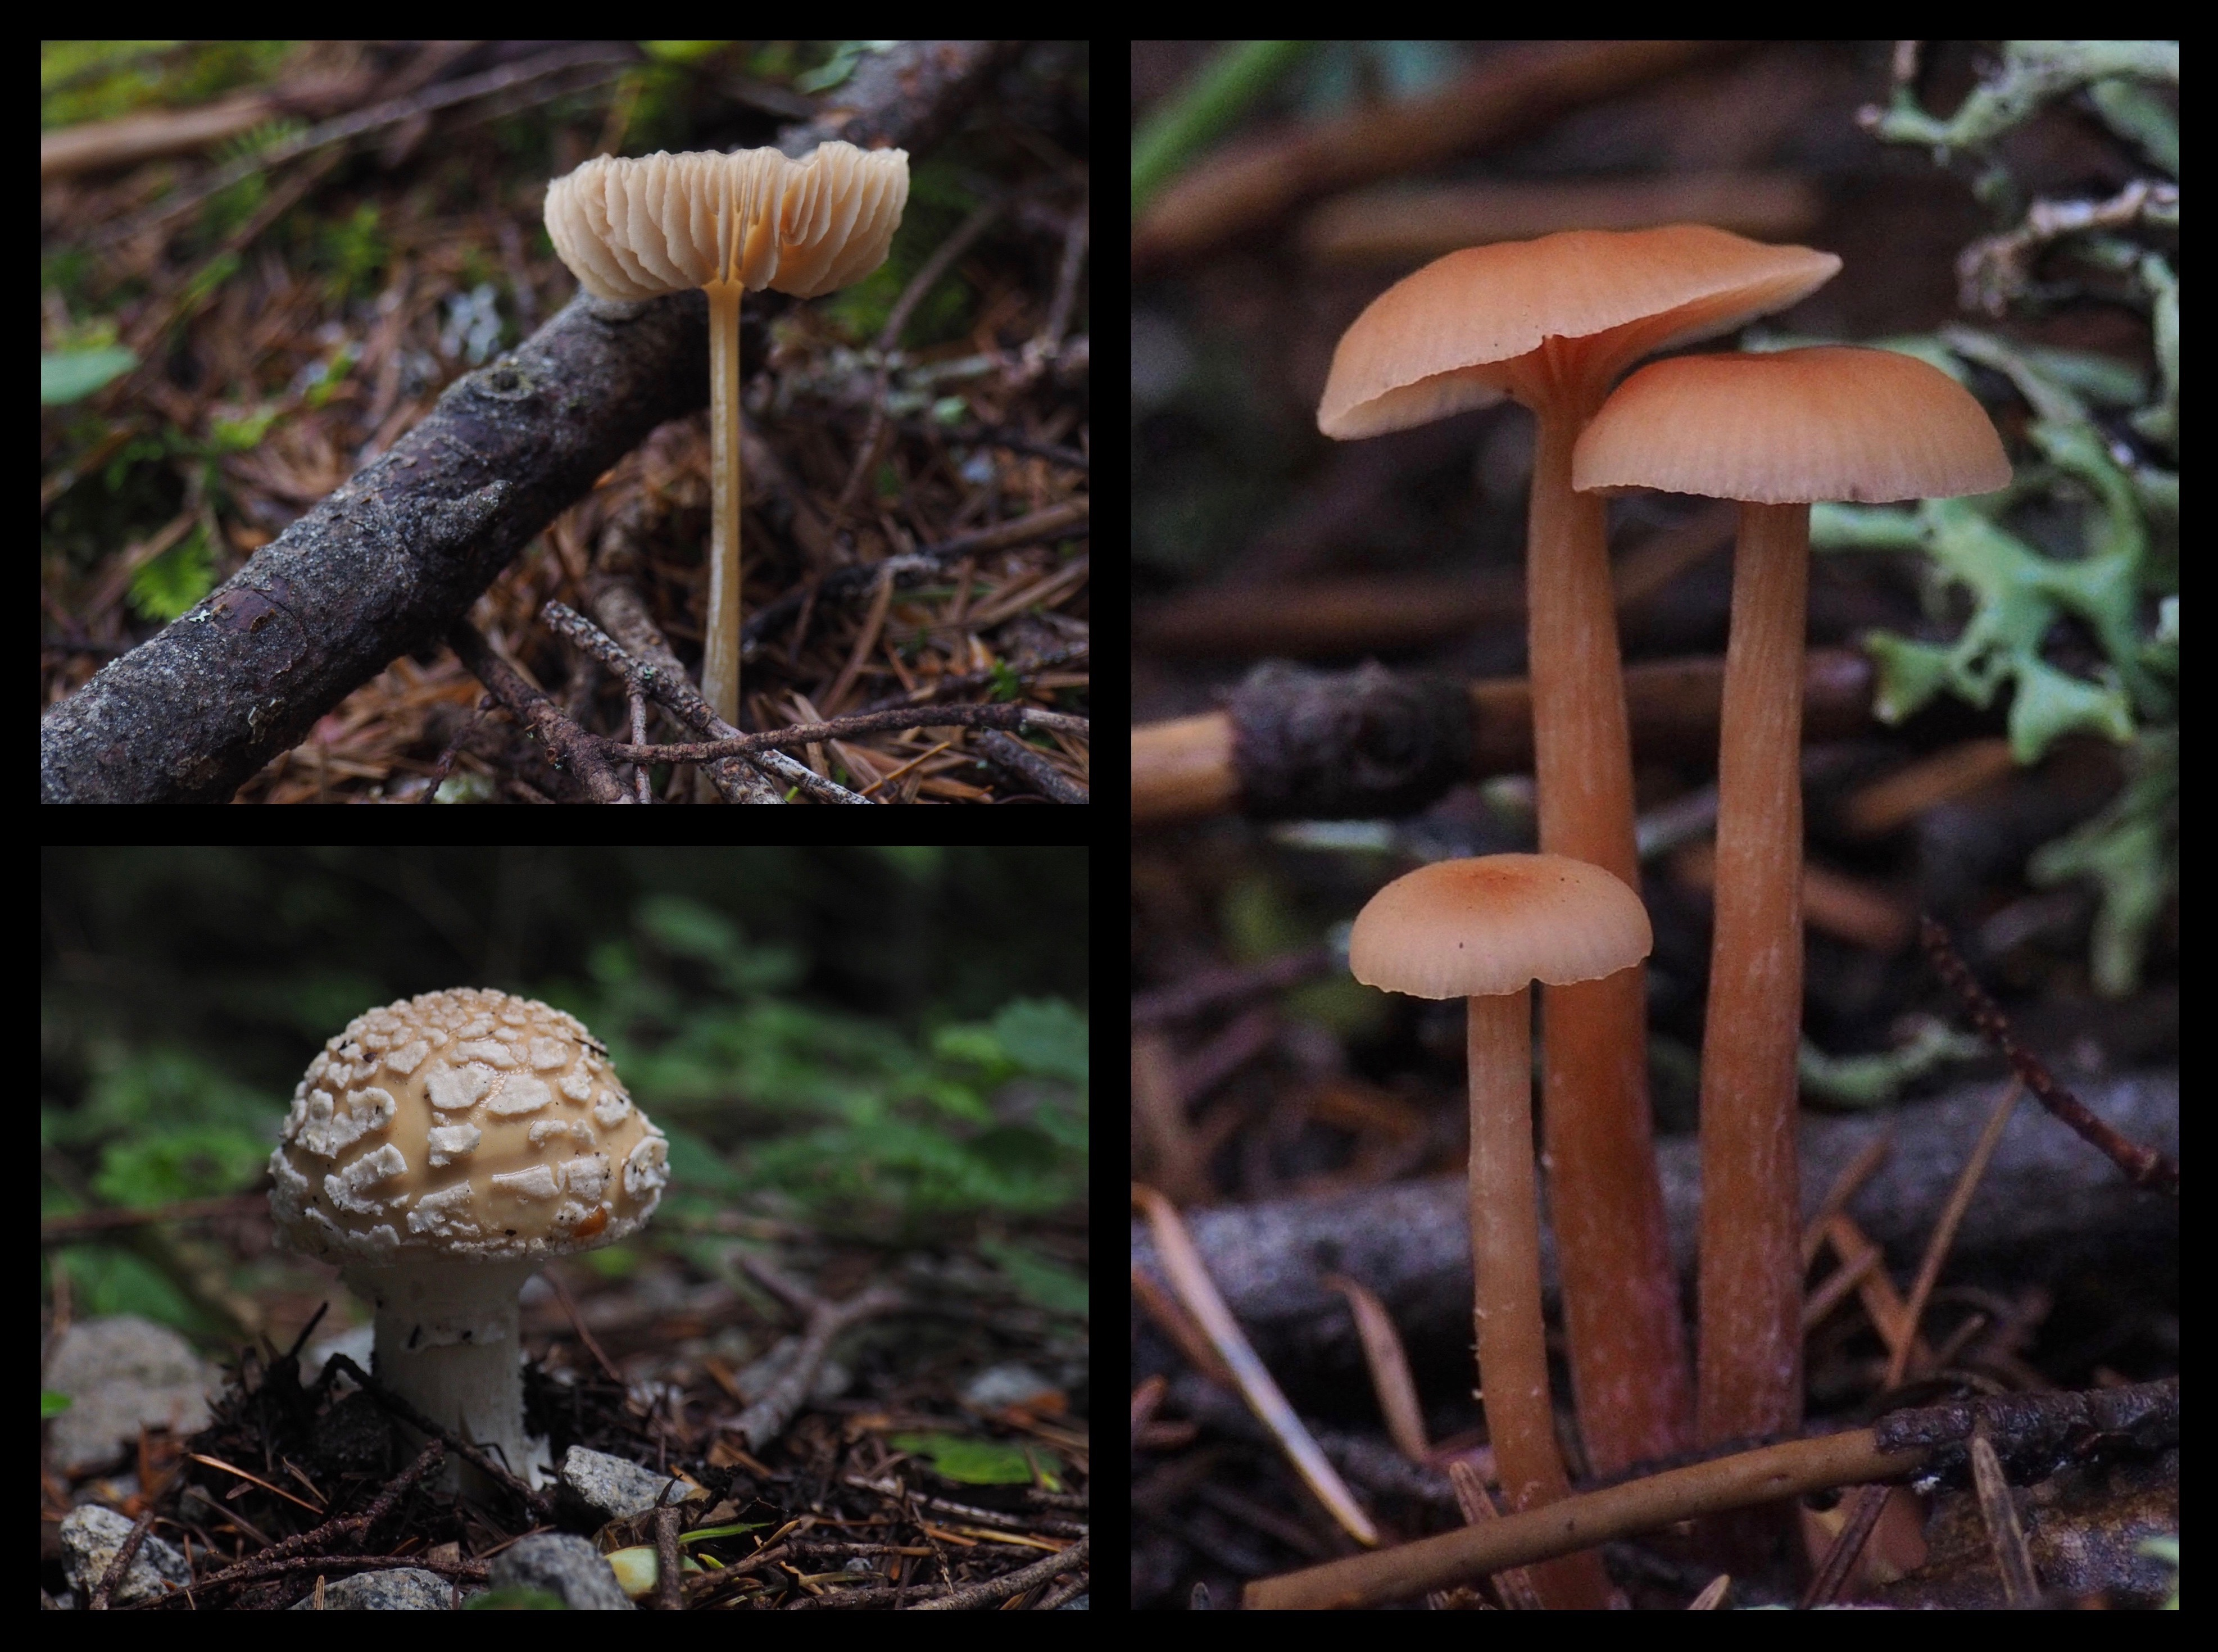 Watch for whimsically capped mushrooms posing here and there amongst the lowland forest litter. Ira Spring Trail, July 09, 2016.